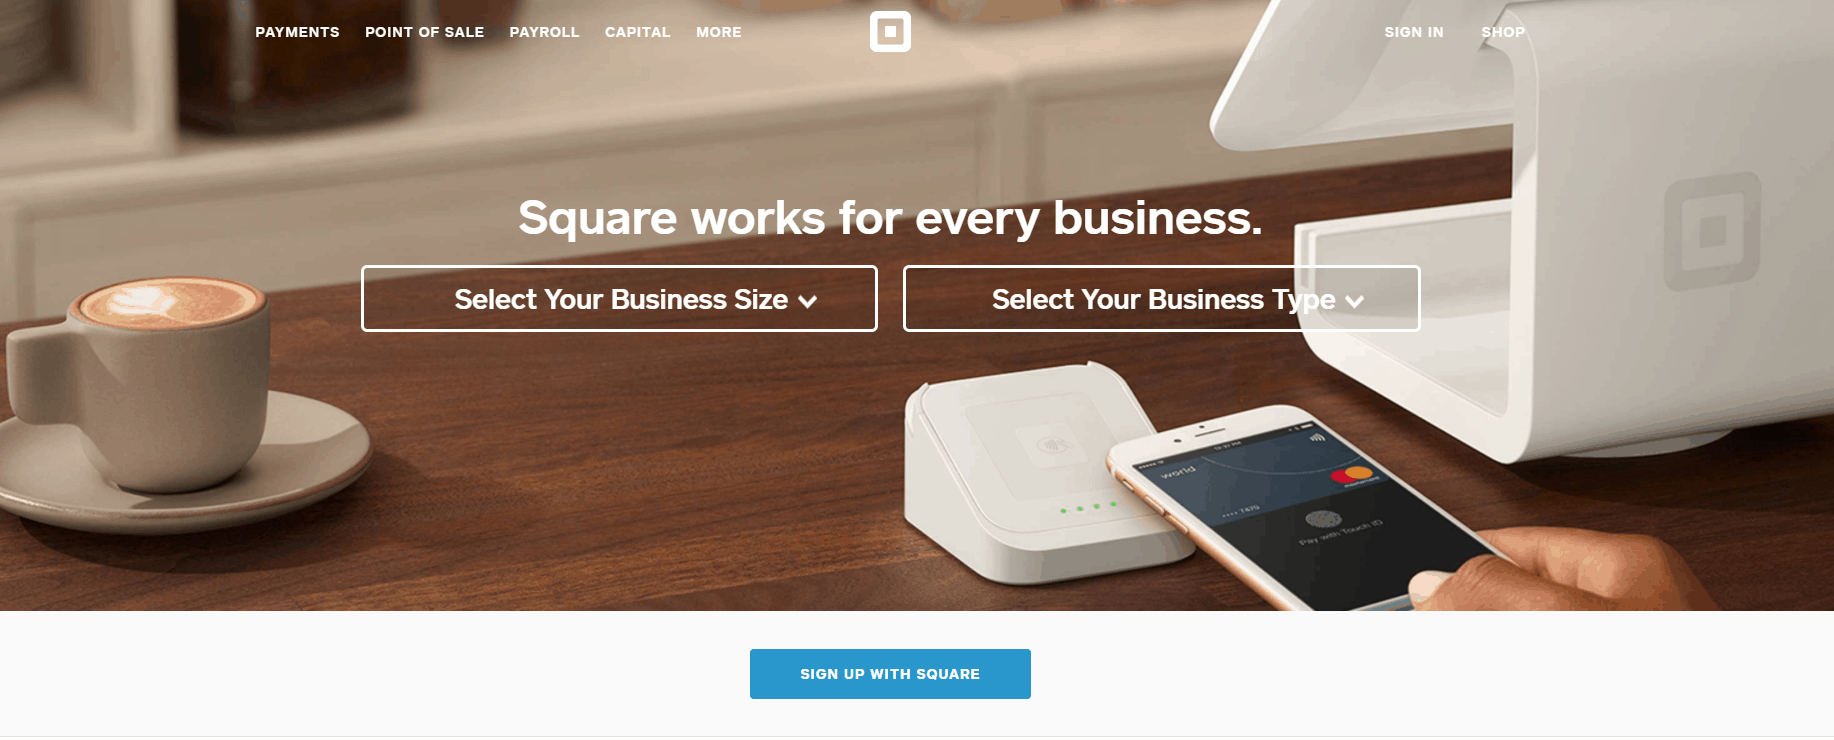 Square is built with Ruby on Rails